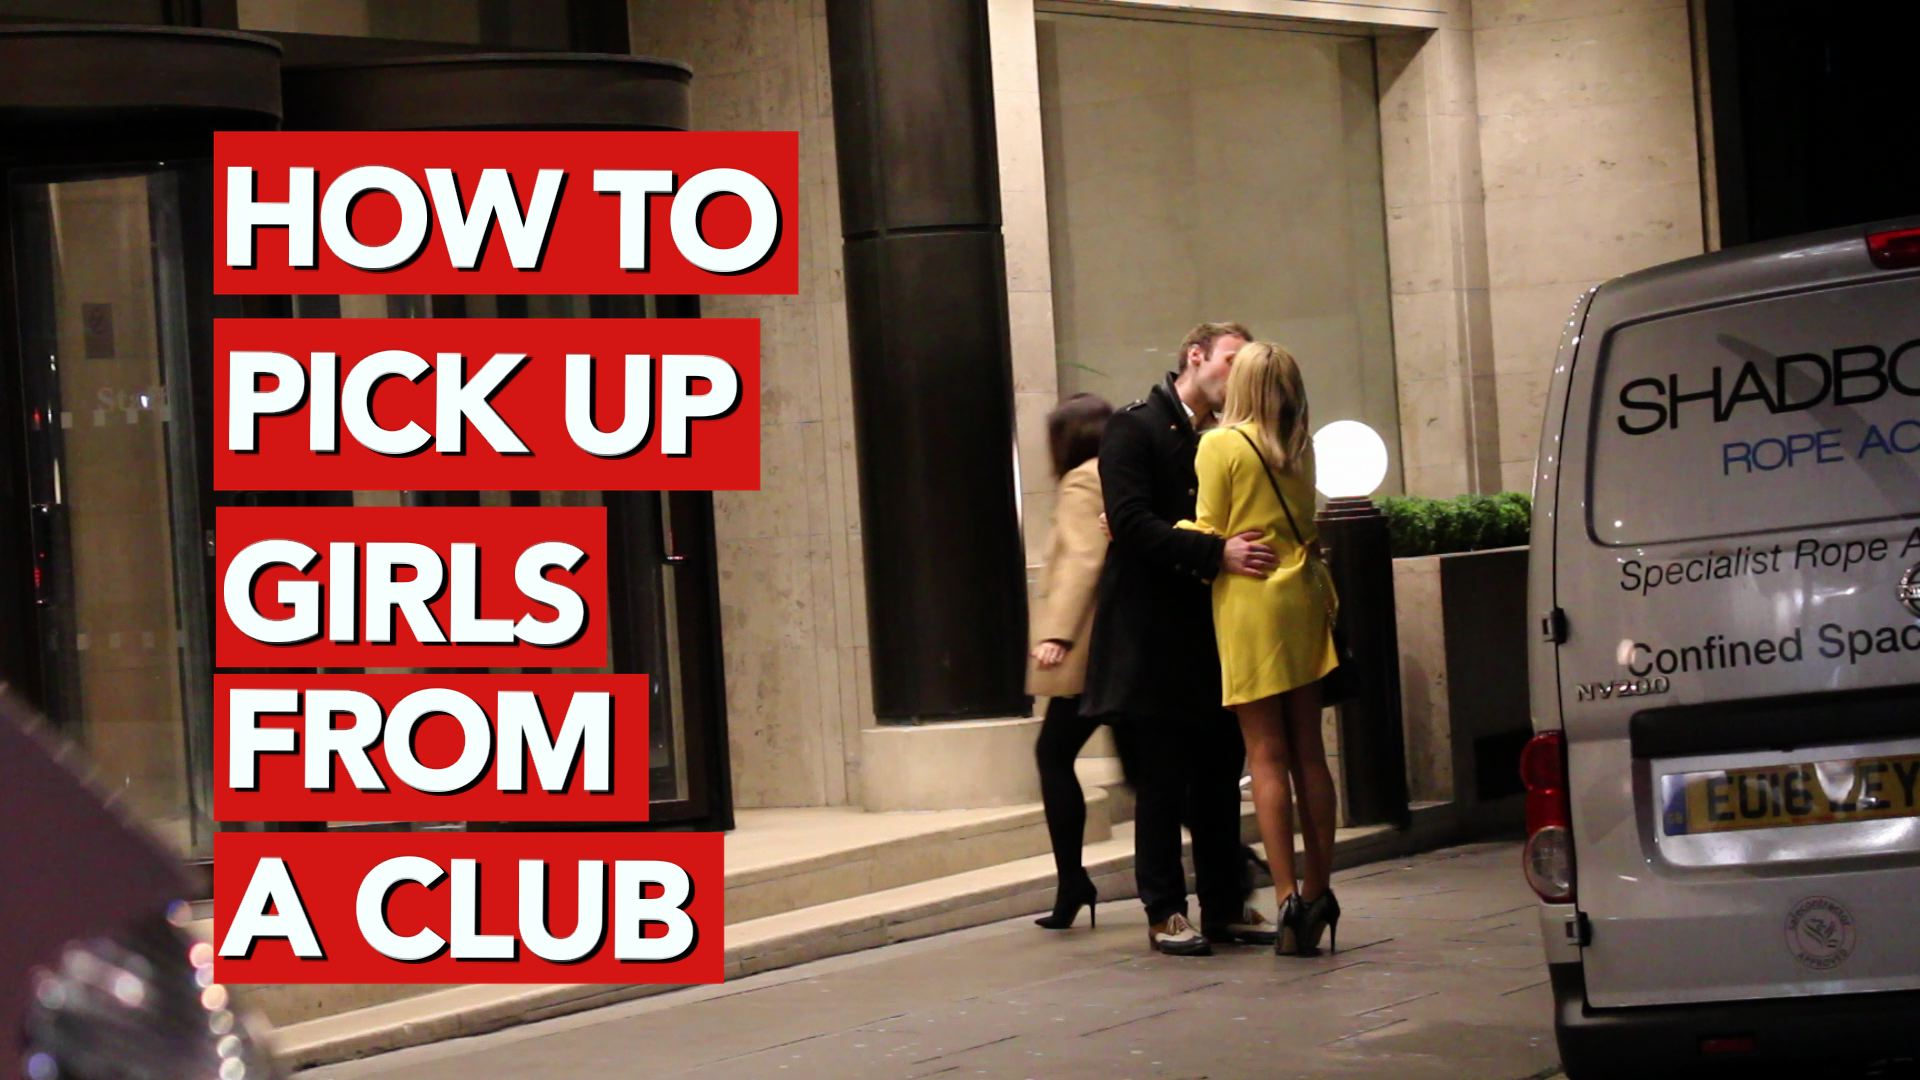 How to pick up girls from a club